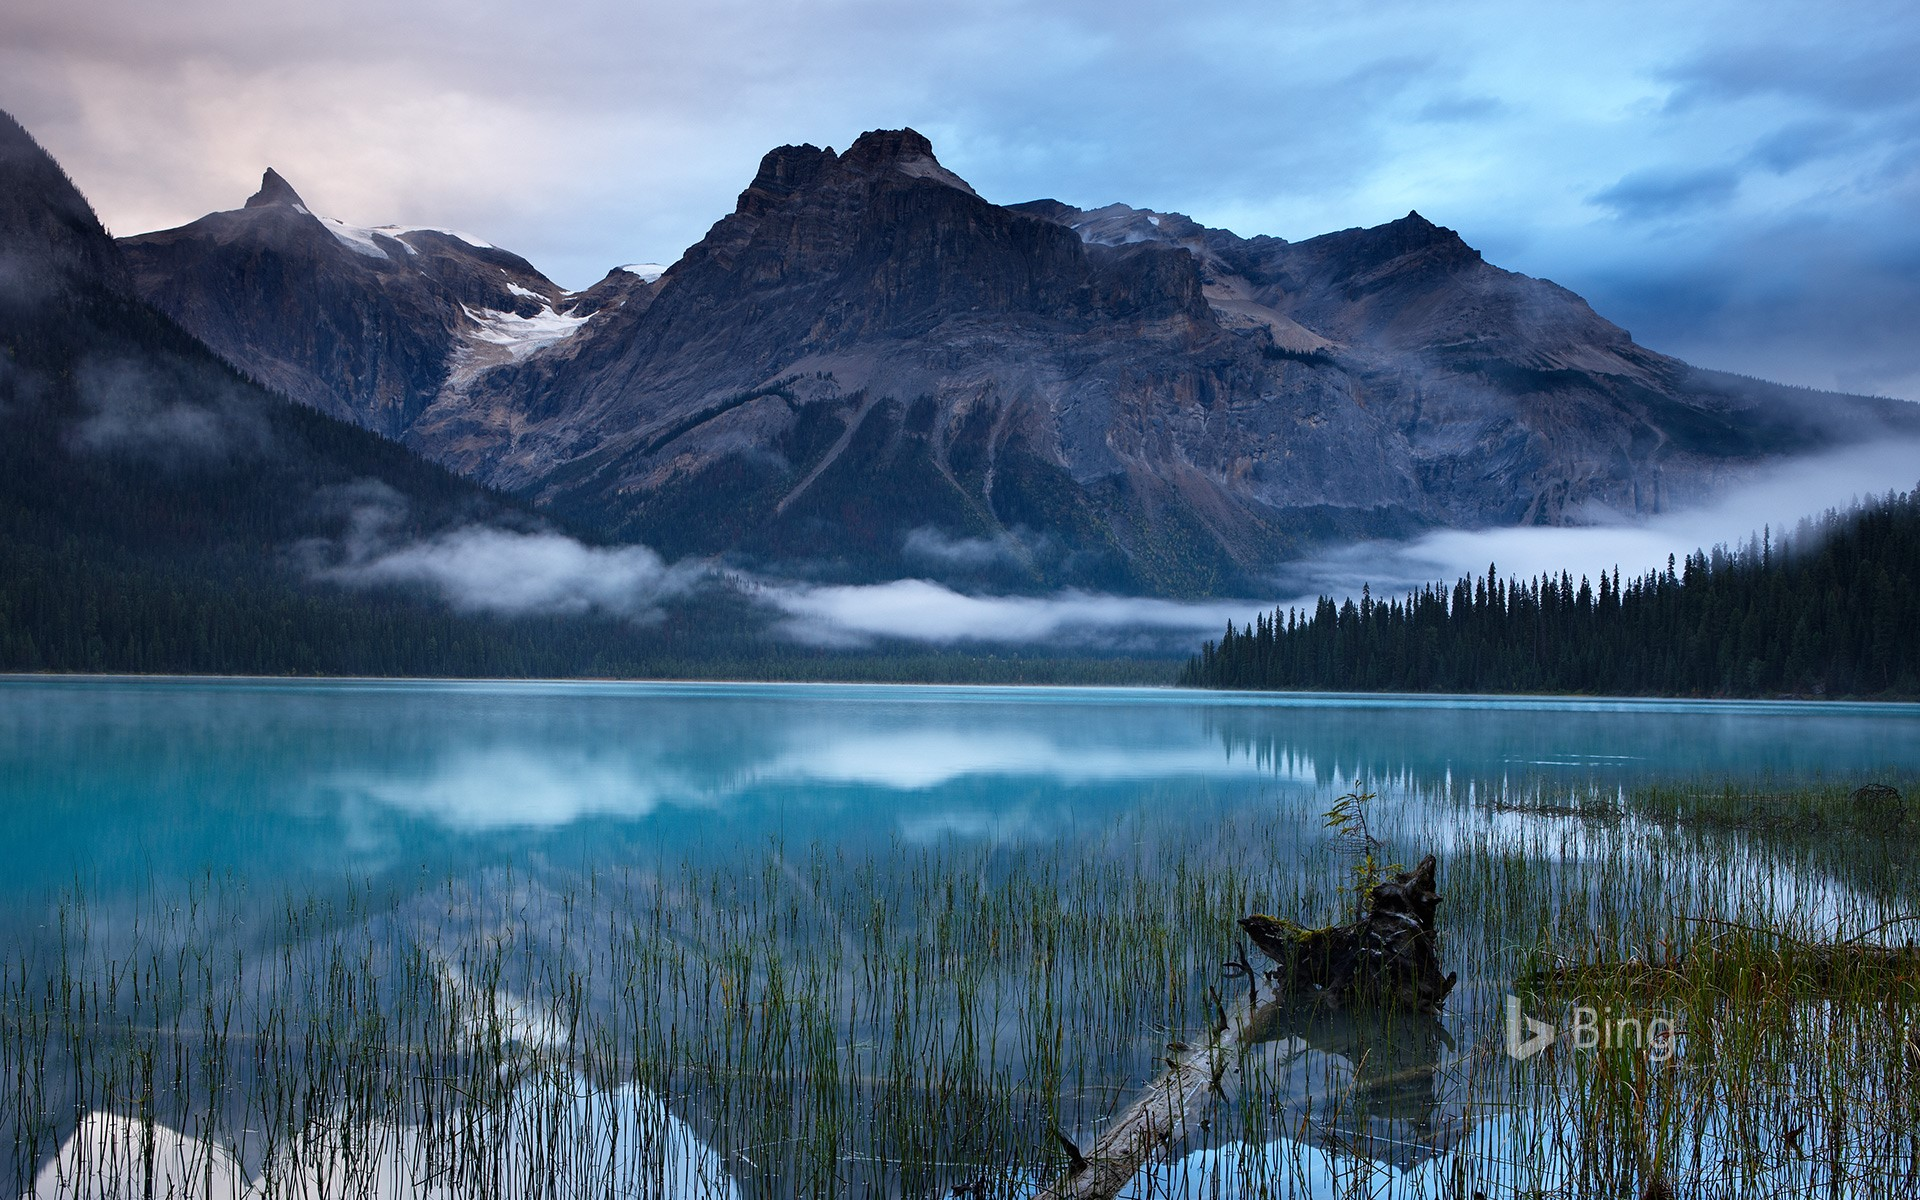 Emerald Lake with the peaks of the President Range in Yoho National Park, B.C., Canada